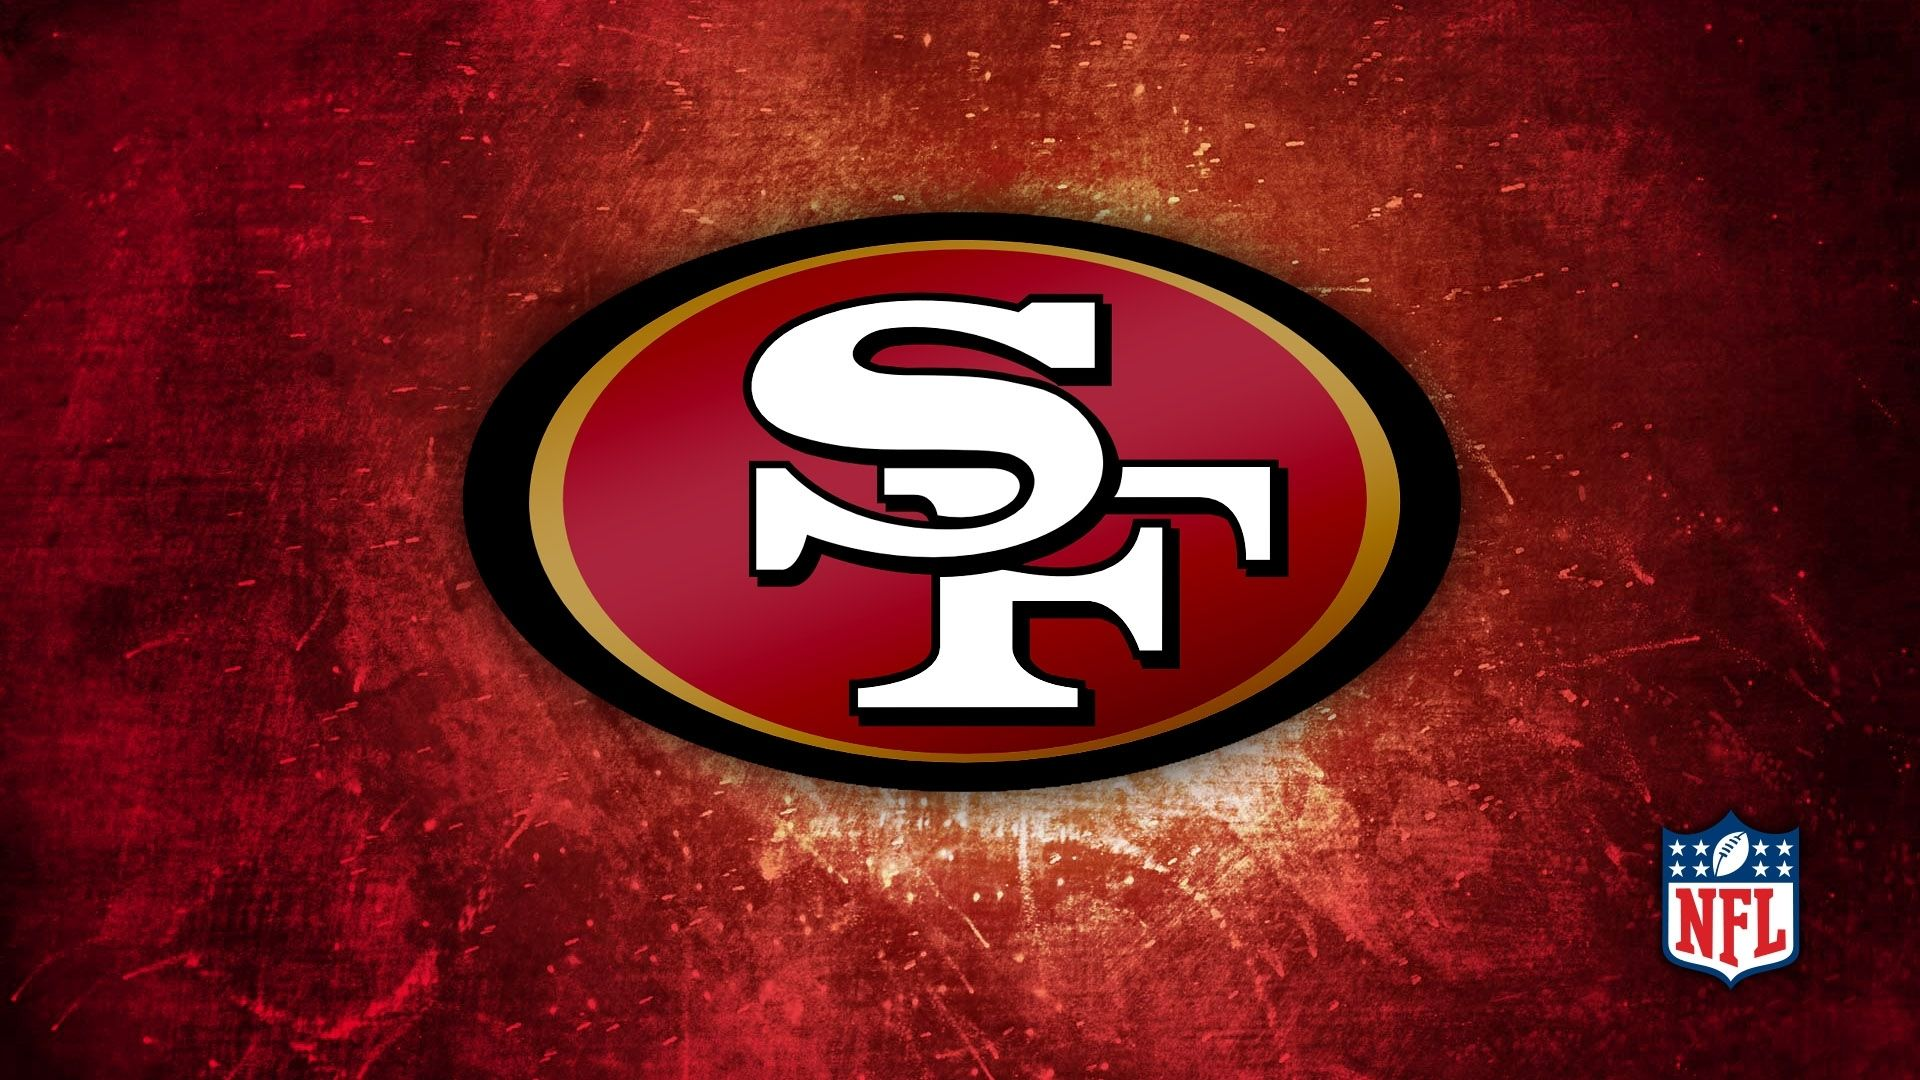 10 Top San Francisco 49ers Desktop Wallpaper Full Hd 1920 1080 For